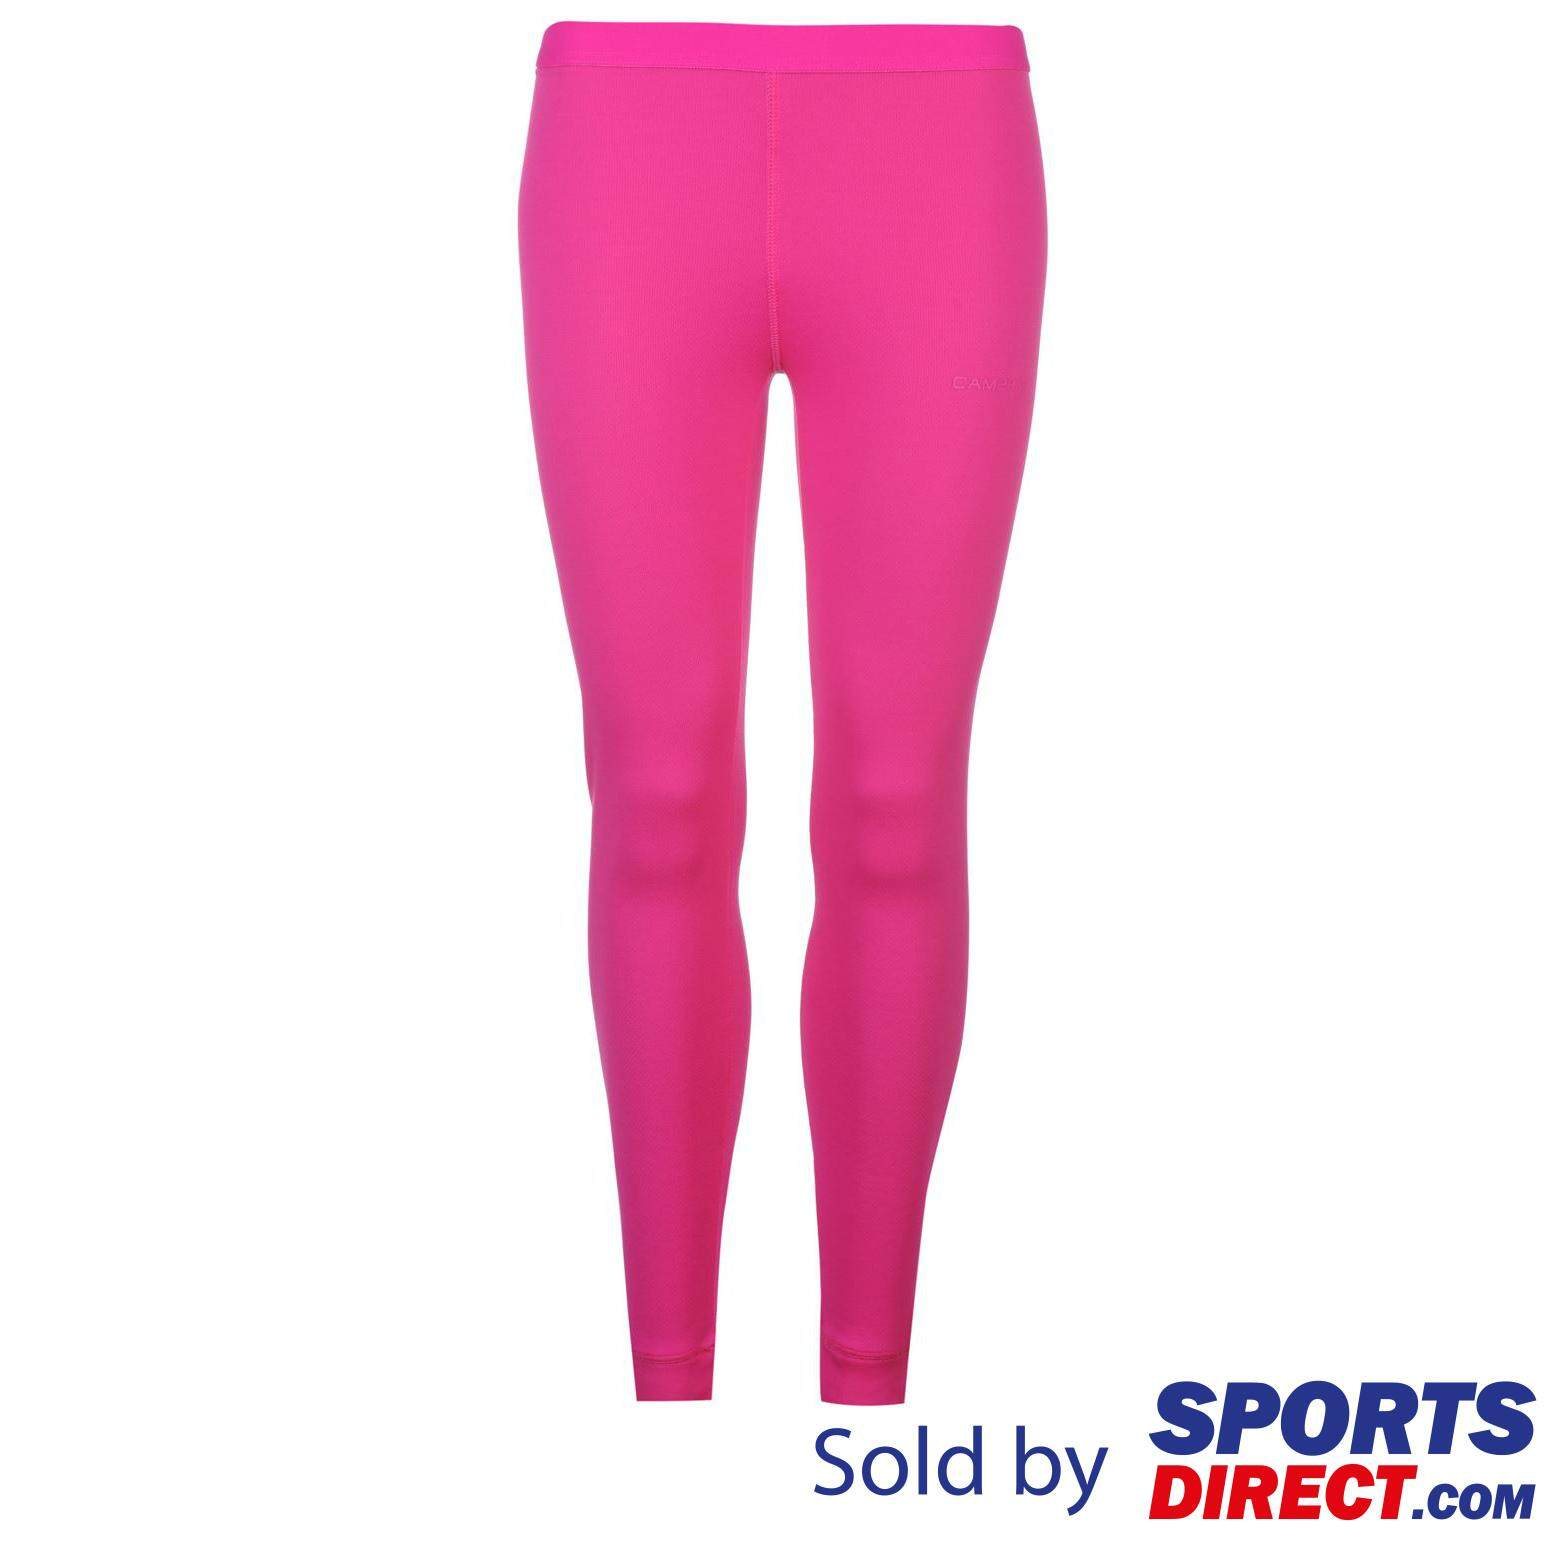 Campri Baselayer Pants Ladies (pink) By Sports Direct Mst Sdn Bhd.